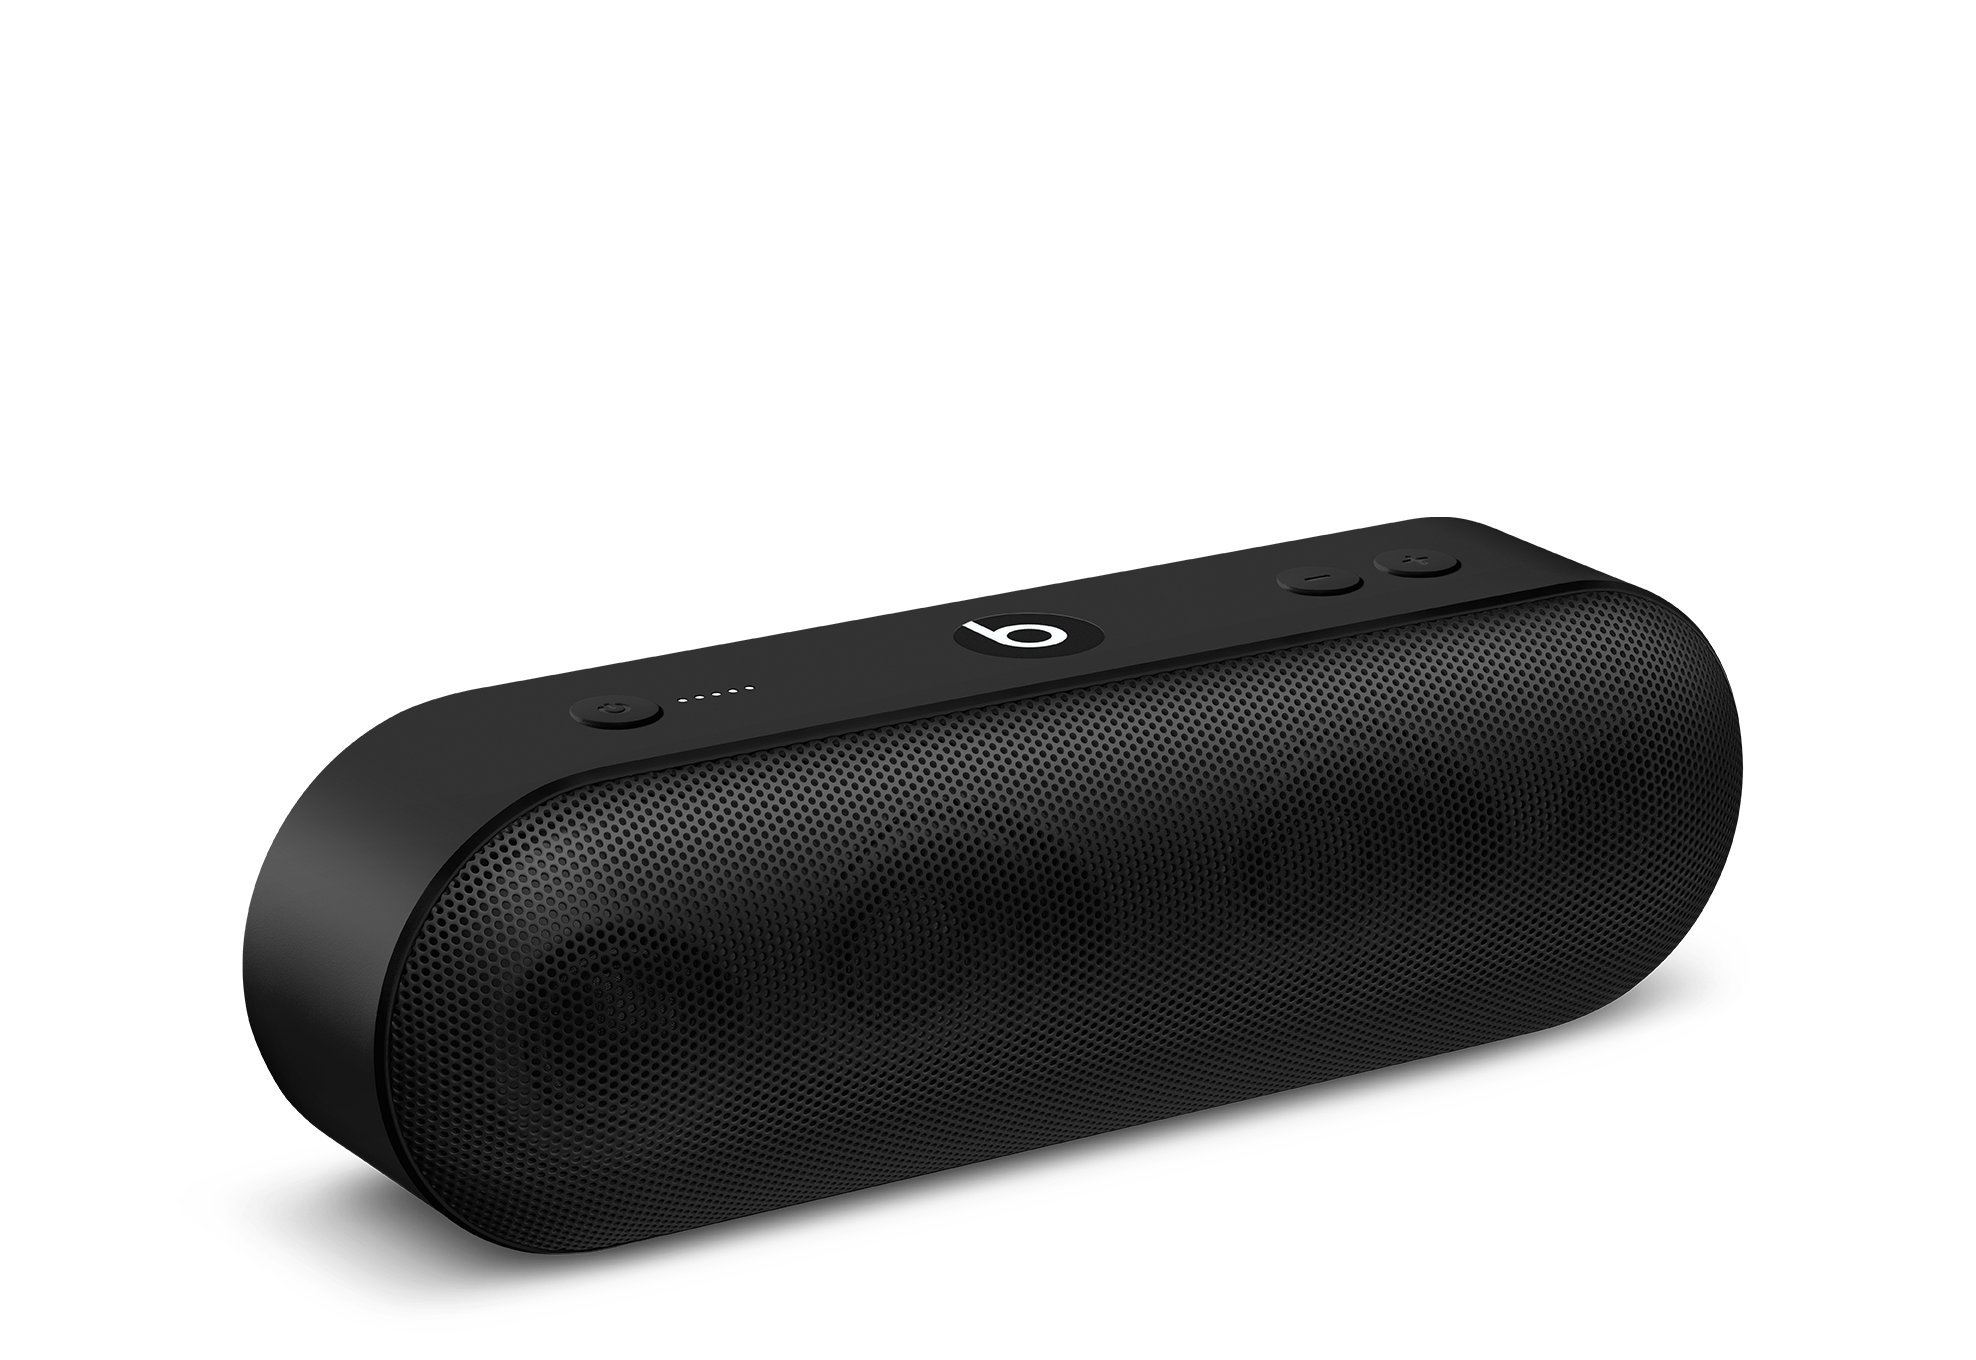 Beats by Dre Pill Plus Portable Wireless/Bluetooth Speaker (Pair) in Black by Beats (Image #3)